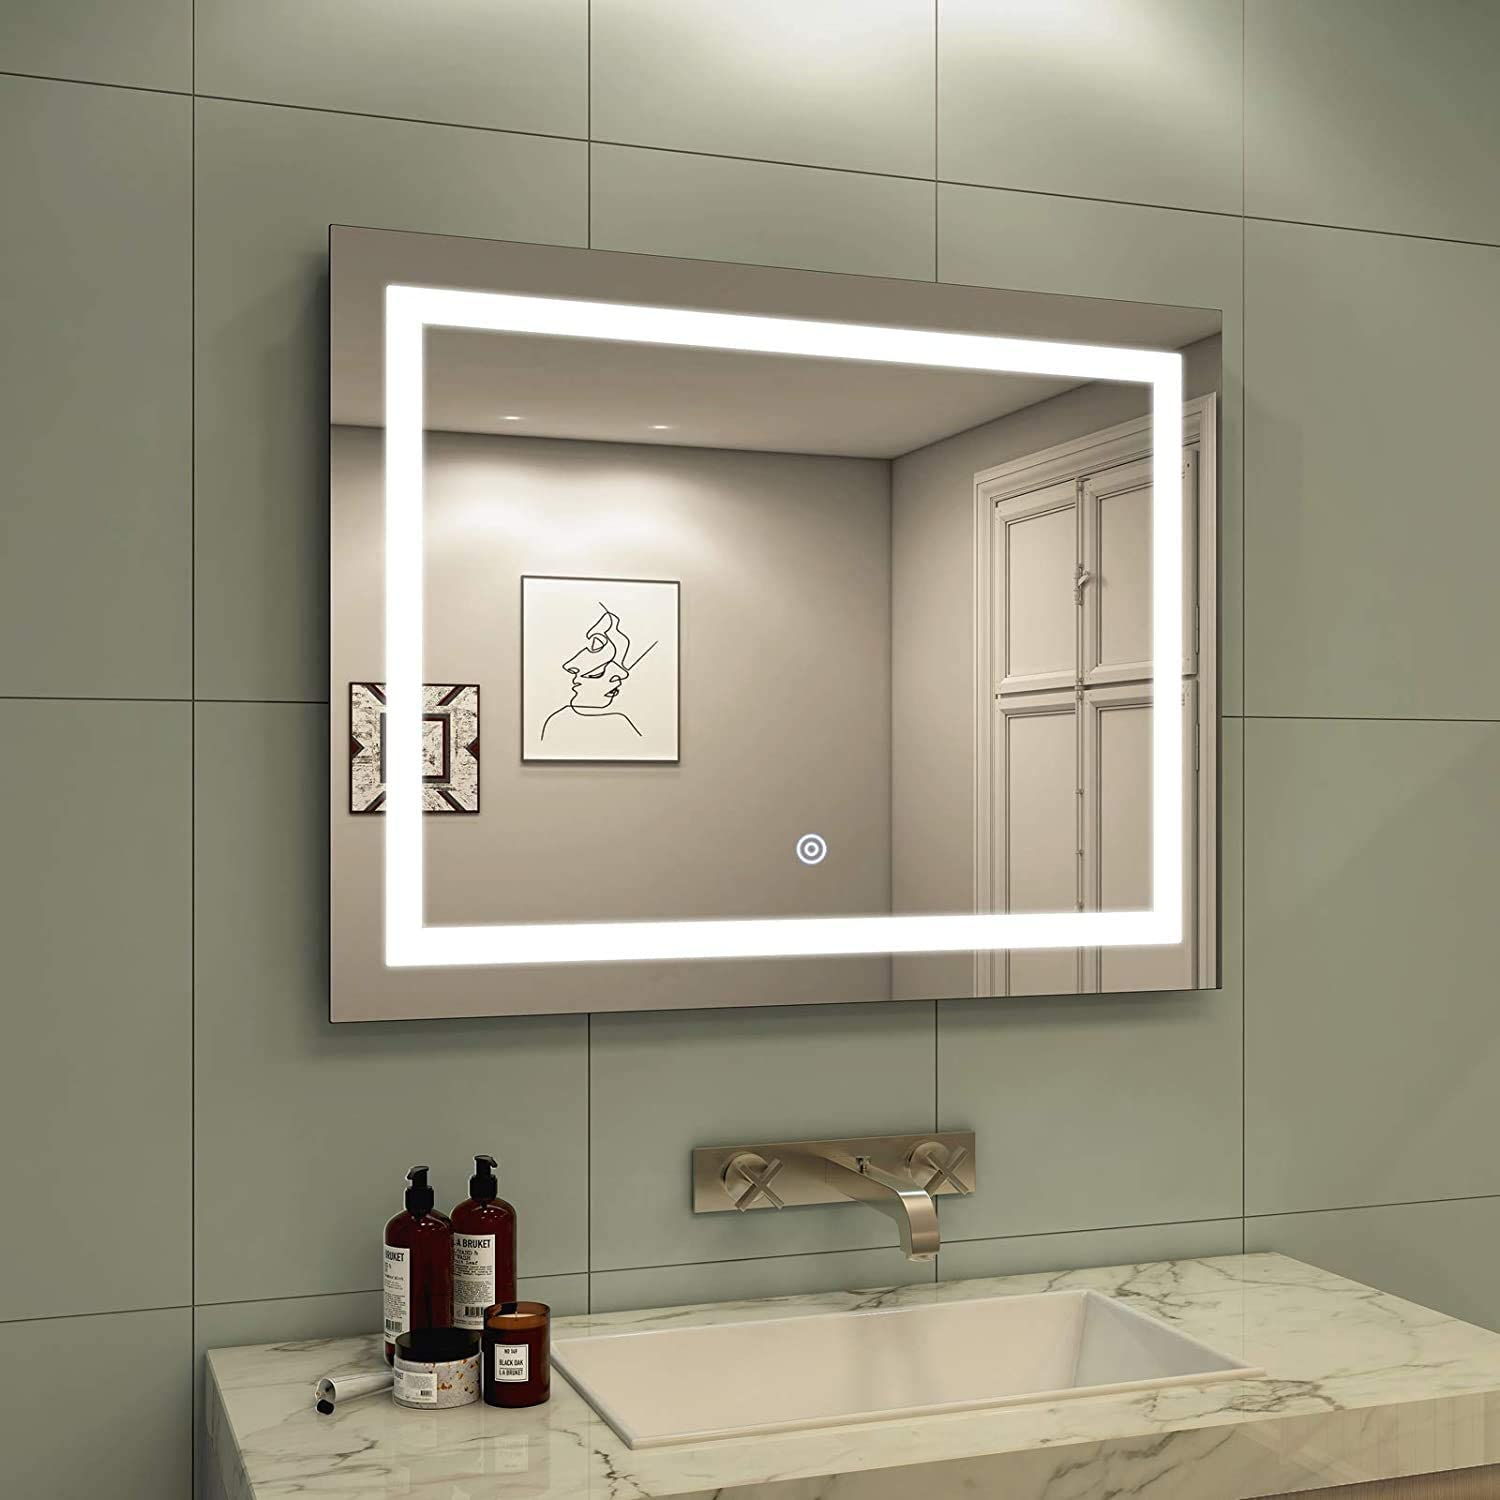 28 x Rare 36 Inch LED Vanity Today's only Mirror Dimmable Bathroom